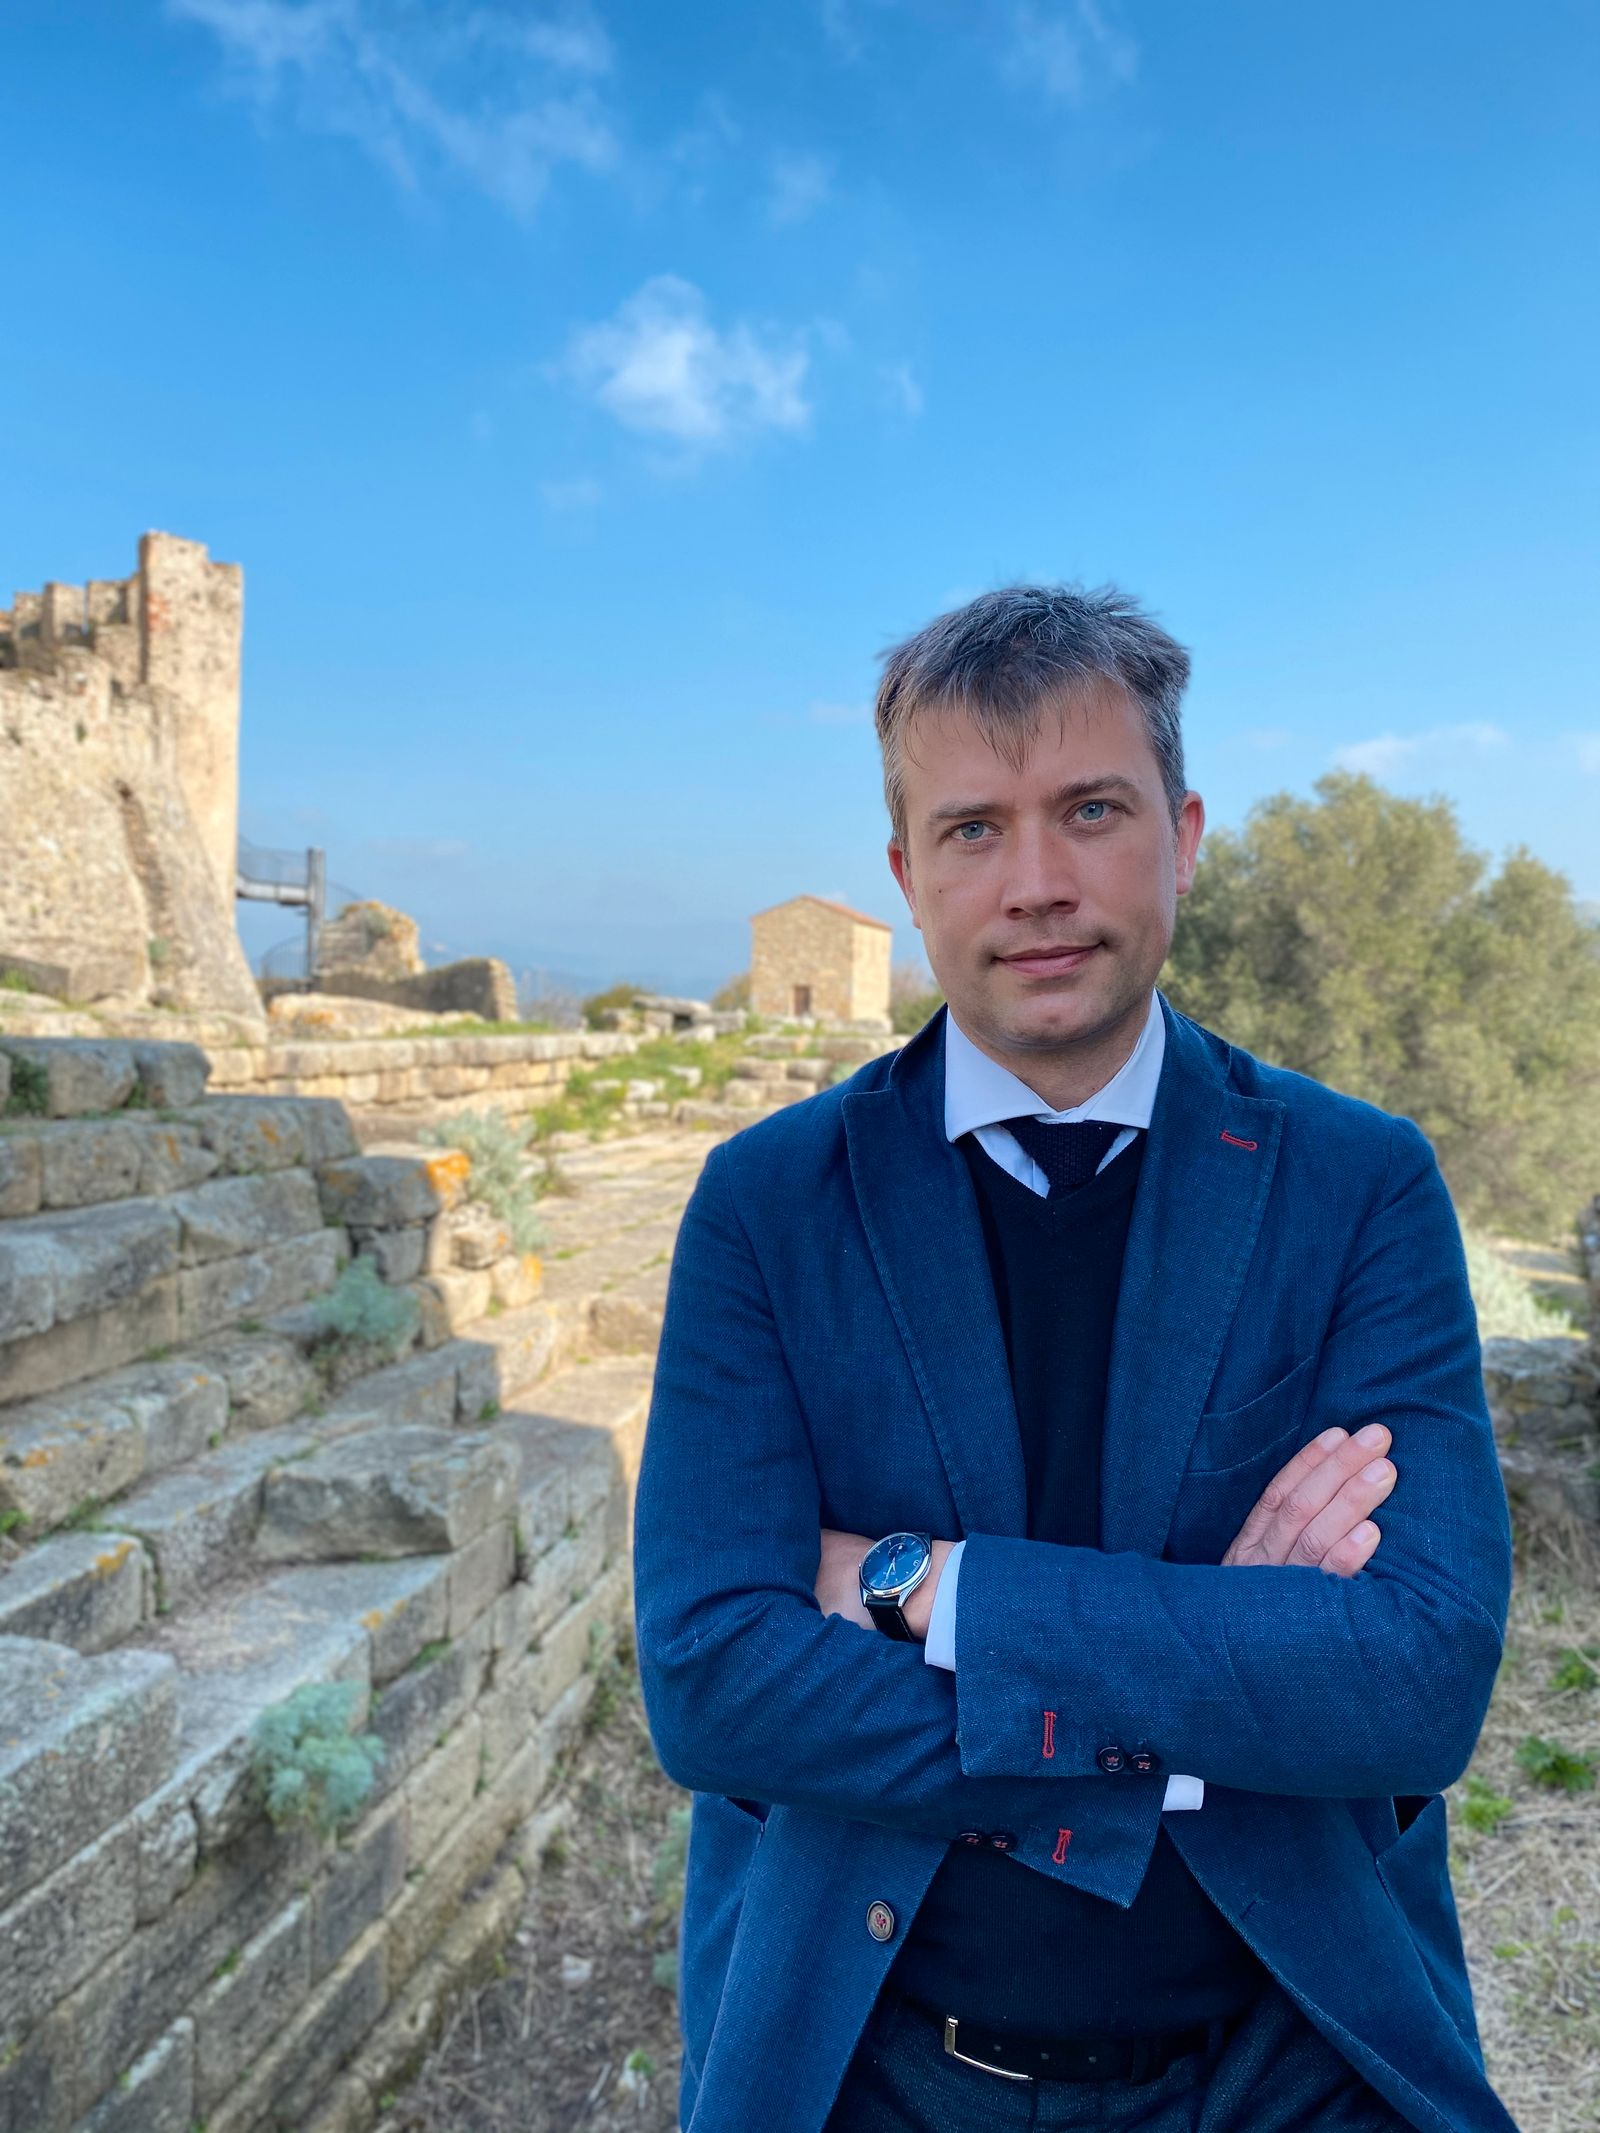 Italy: German born Gabriel Zuchtriegel, appointed as new director of Pompeii Archaeological Park